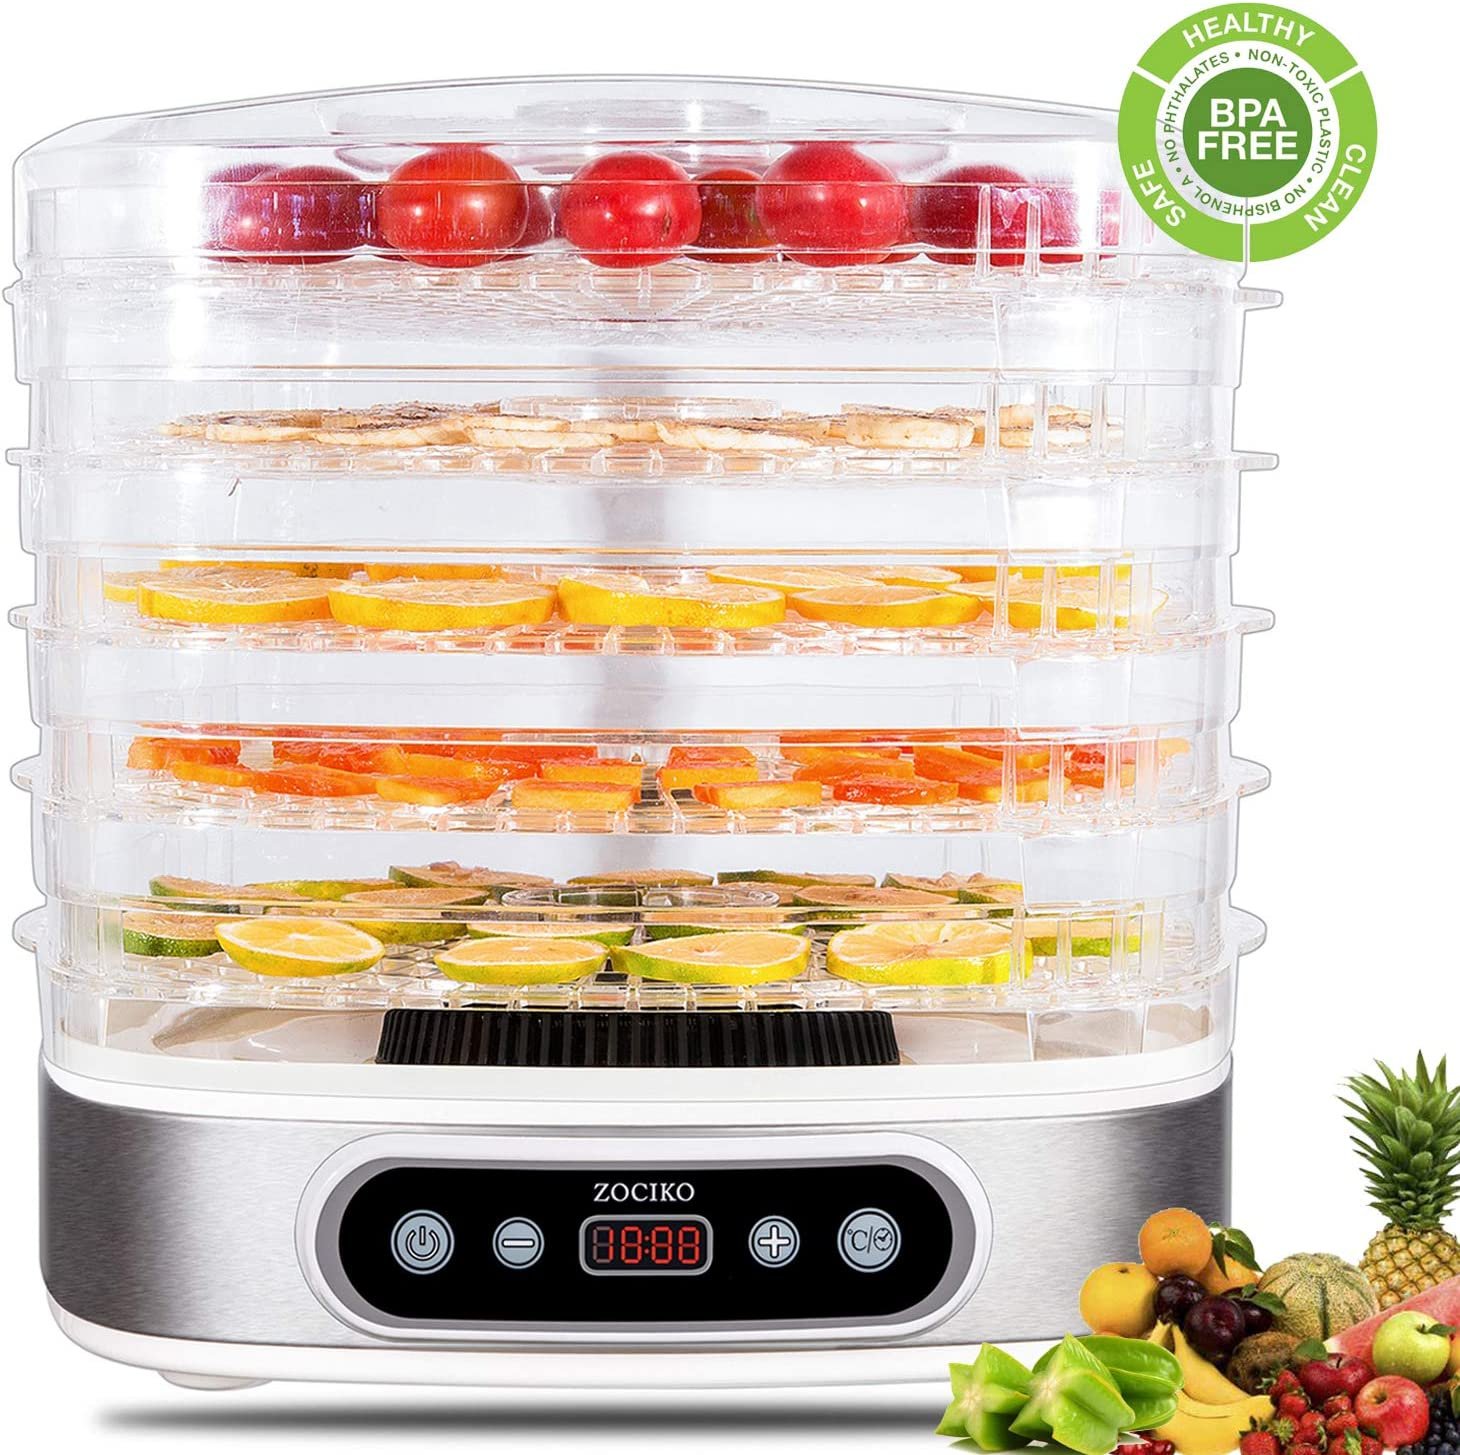 zociko Food Dehydrator Machine, Multi-Tier Food Preserver, Beef Jerky Maker with 5-Trays Adjustable Digital Temperature 95 F to 158 F 450 W, Dried Fruits, Vegetables Nuts, BPA Free, Dishwasher Safe